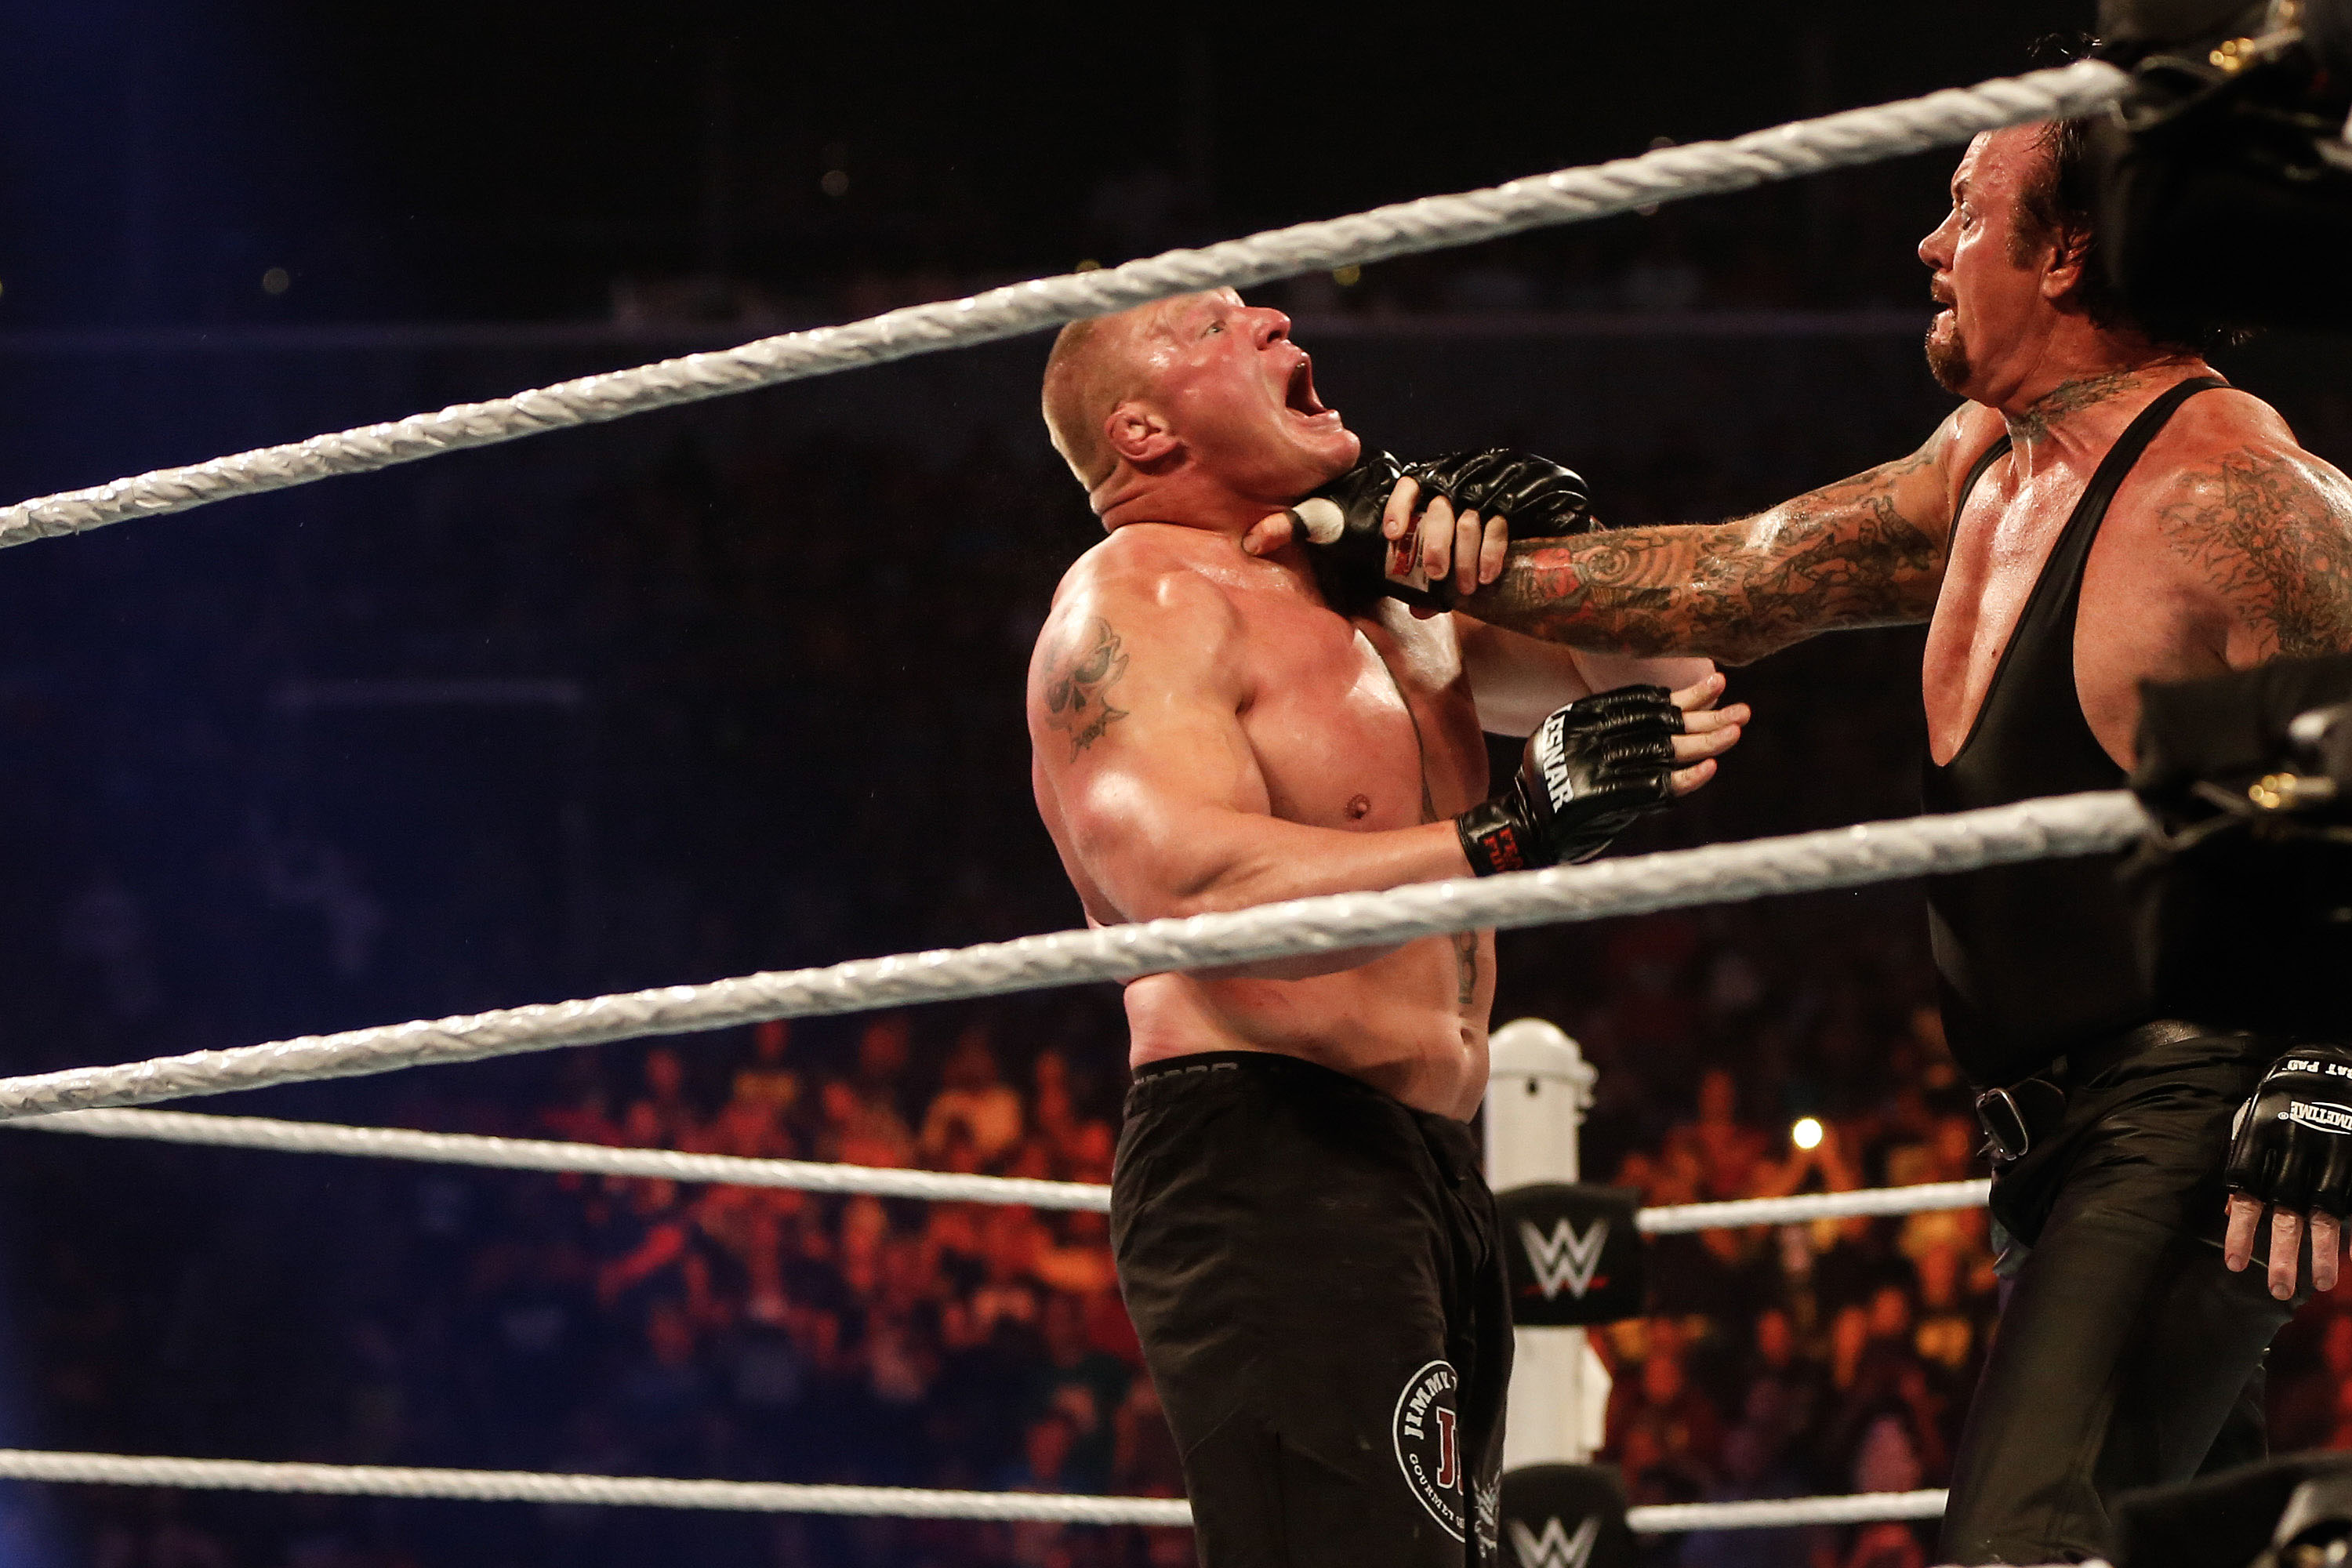 Brock Lesnar and The Undertaker battle it out at the WWE SummerSlam (Photo by JP Yim/Getty Images)